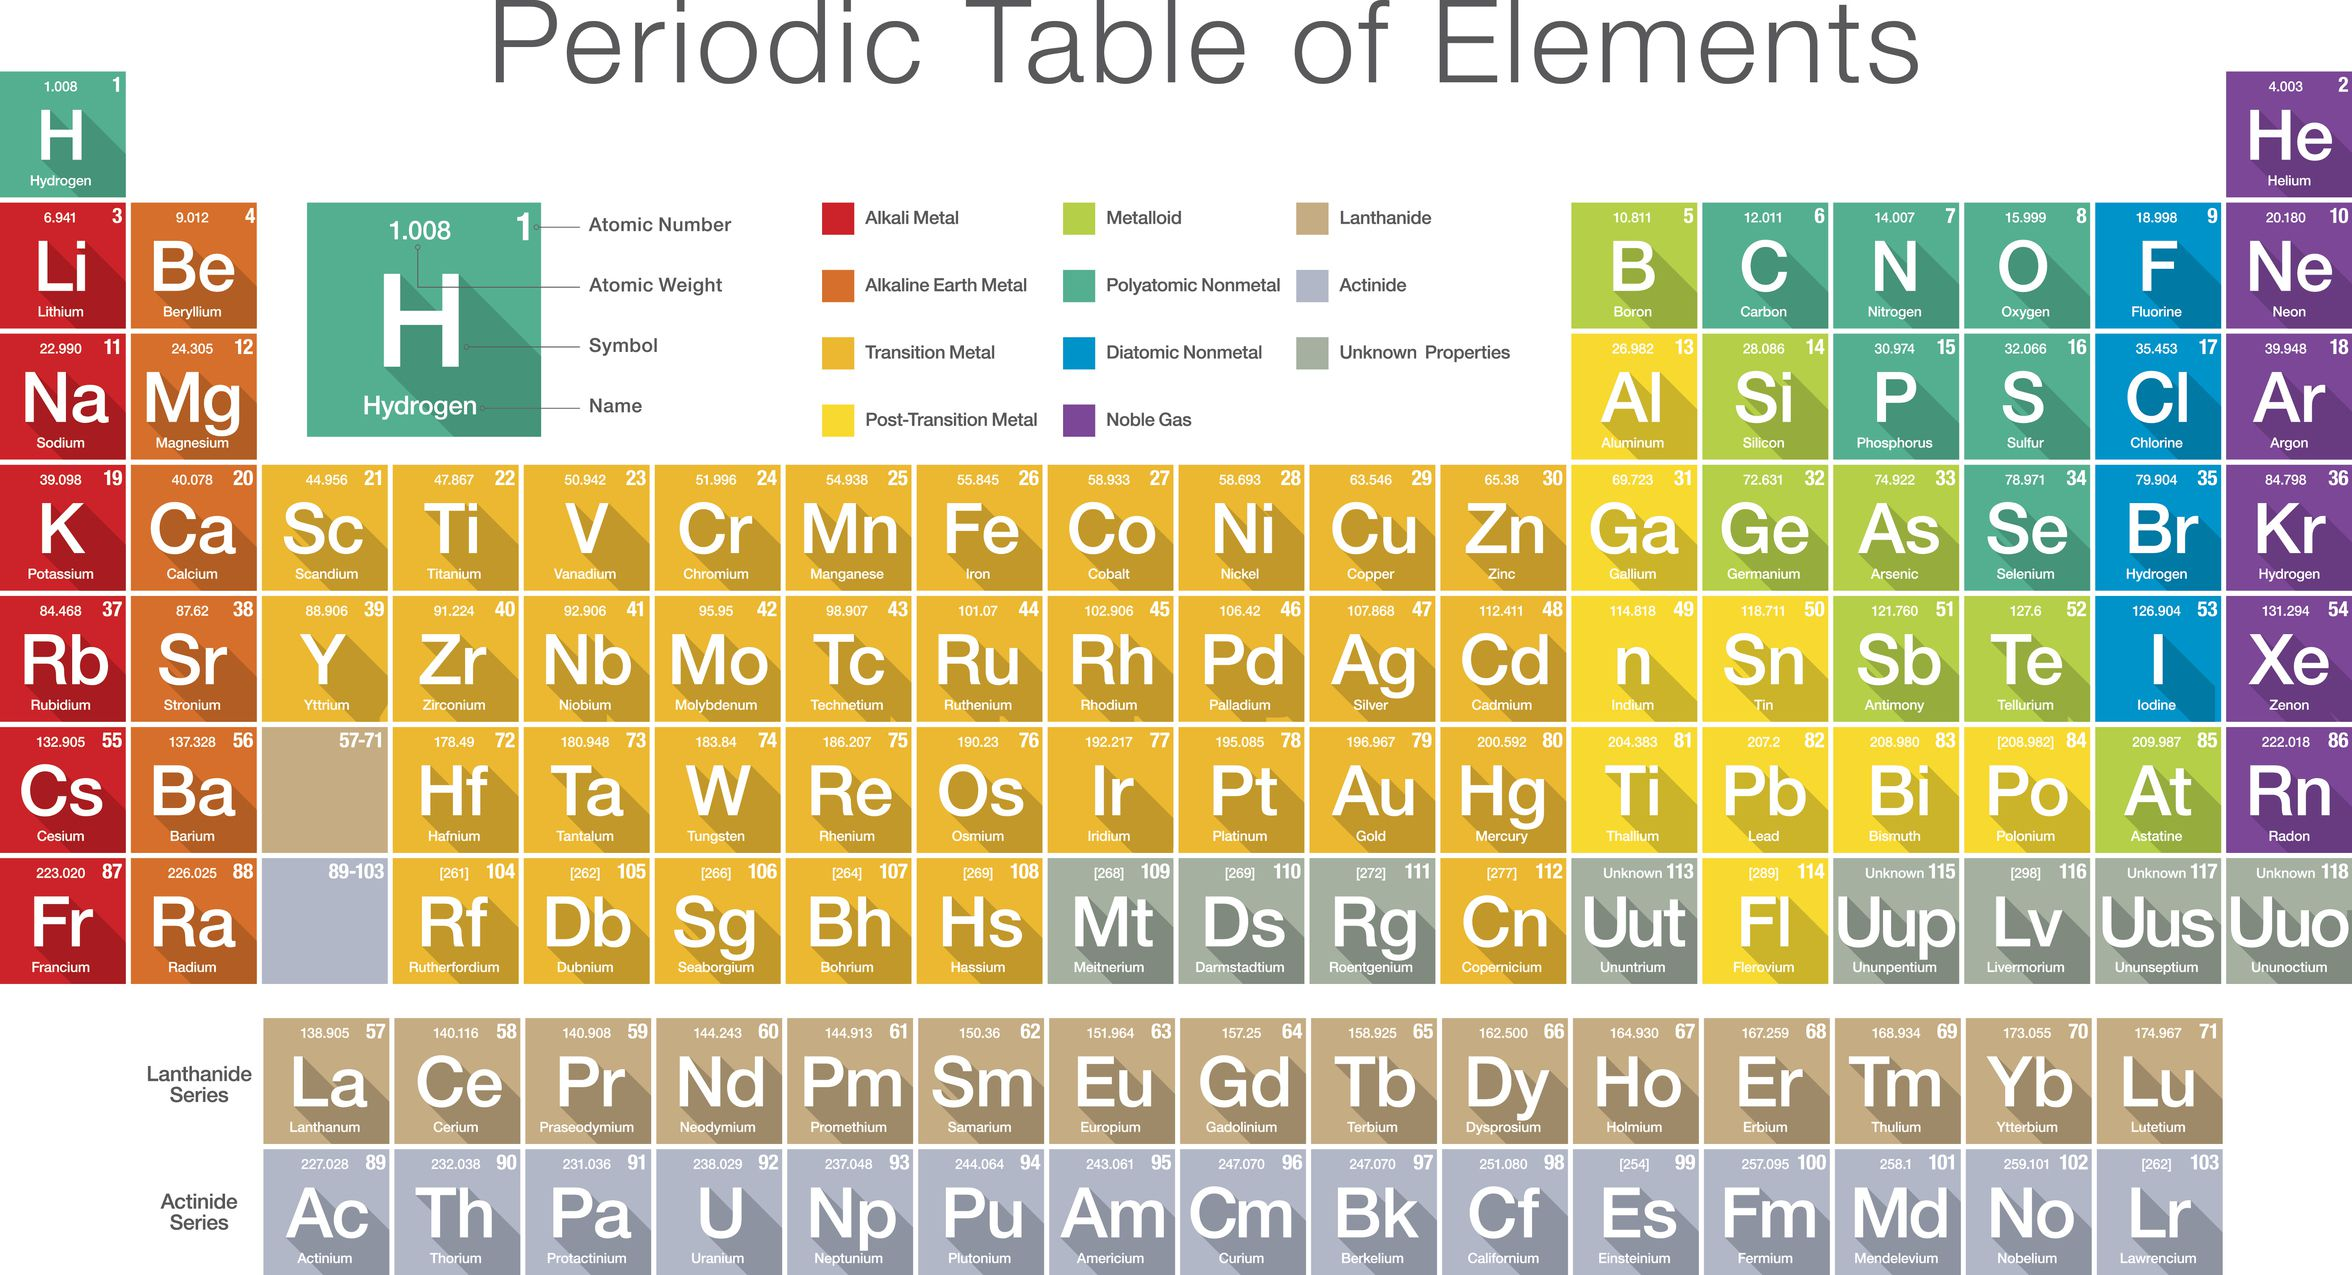 Ged study guide for chemistry periodic table of elements gamestrikefo Images